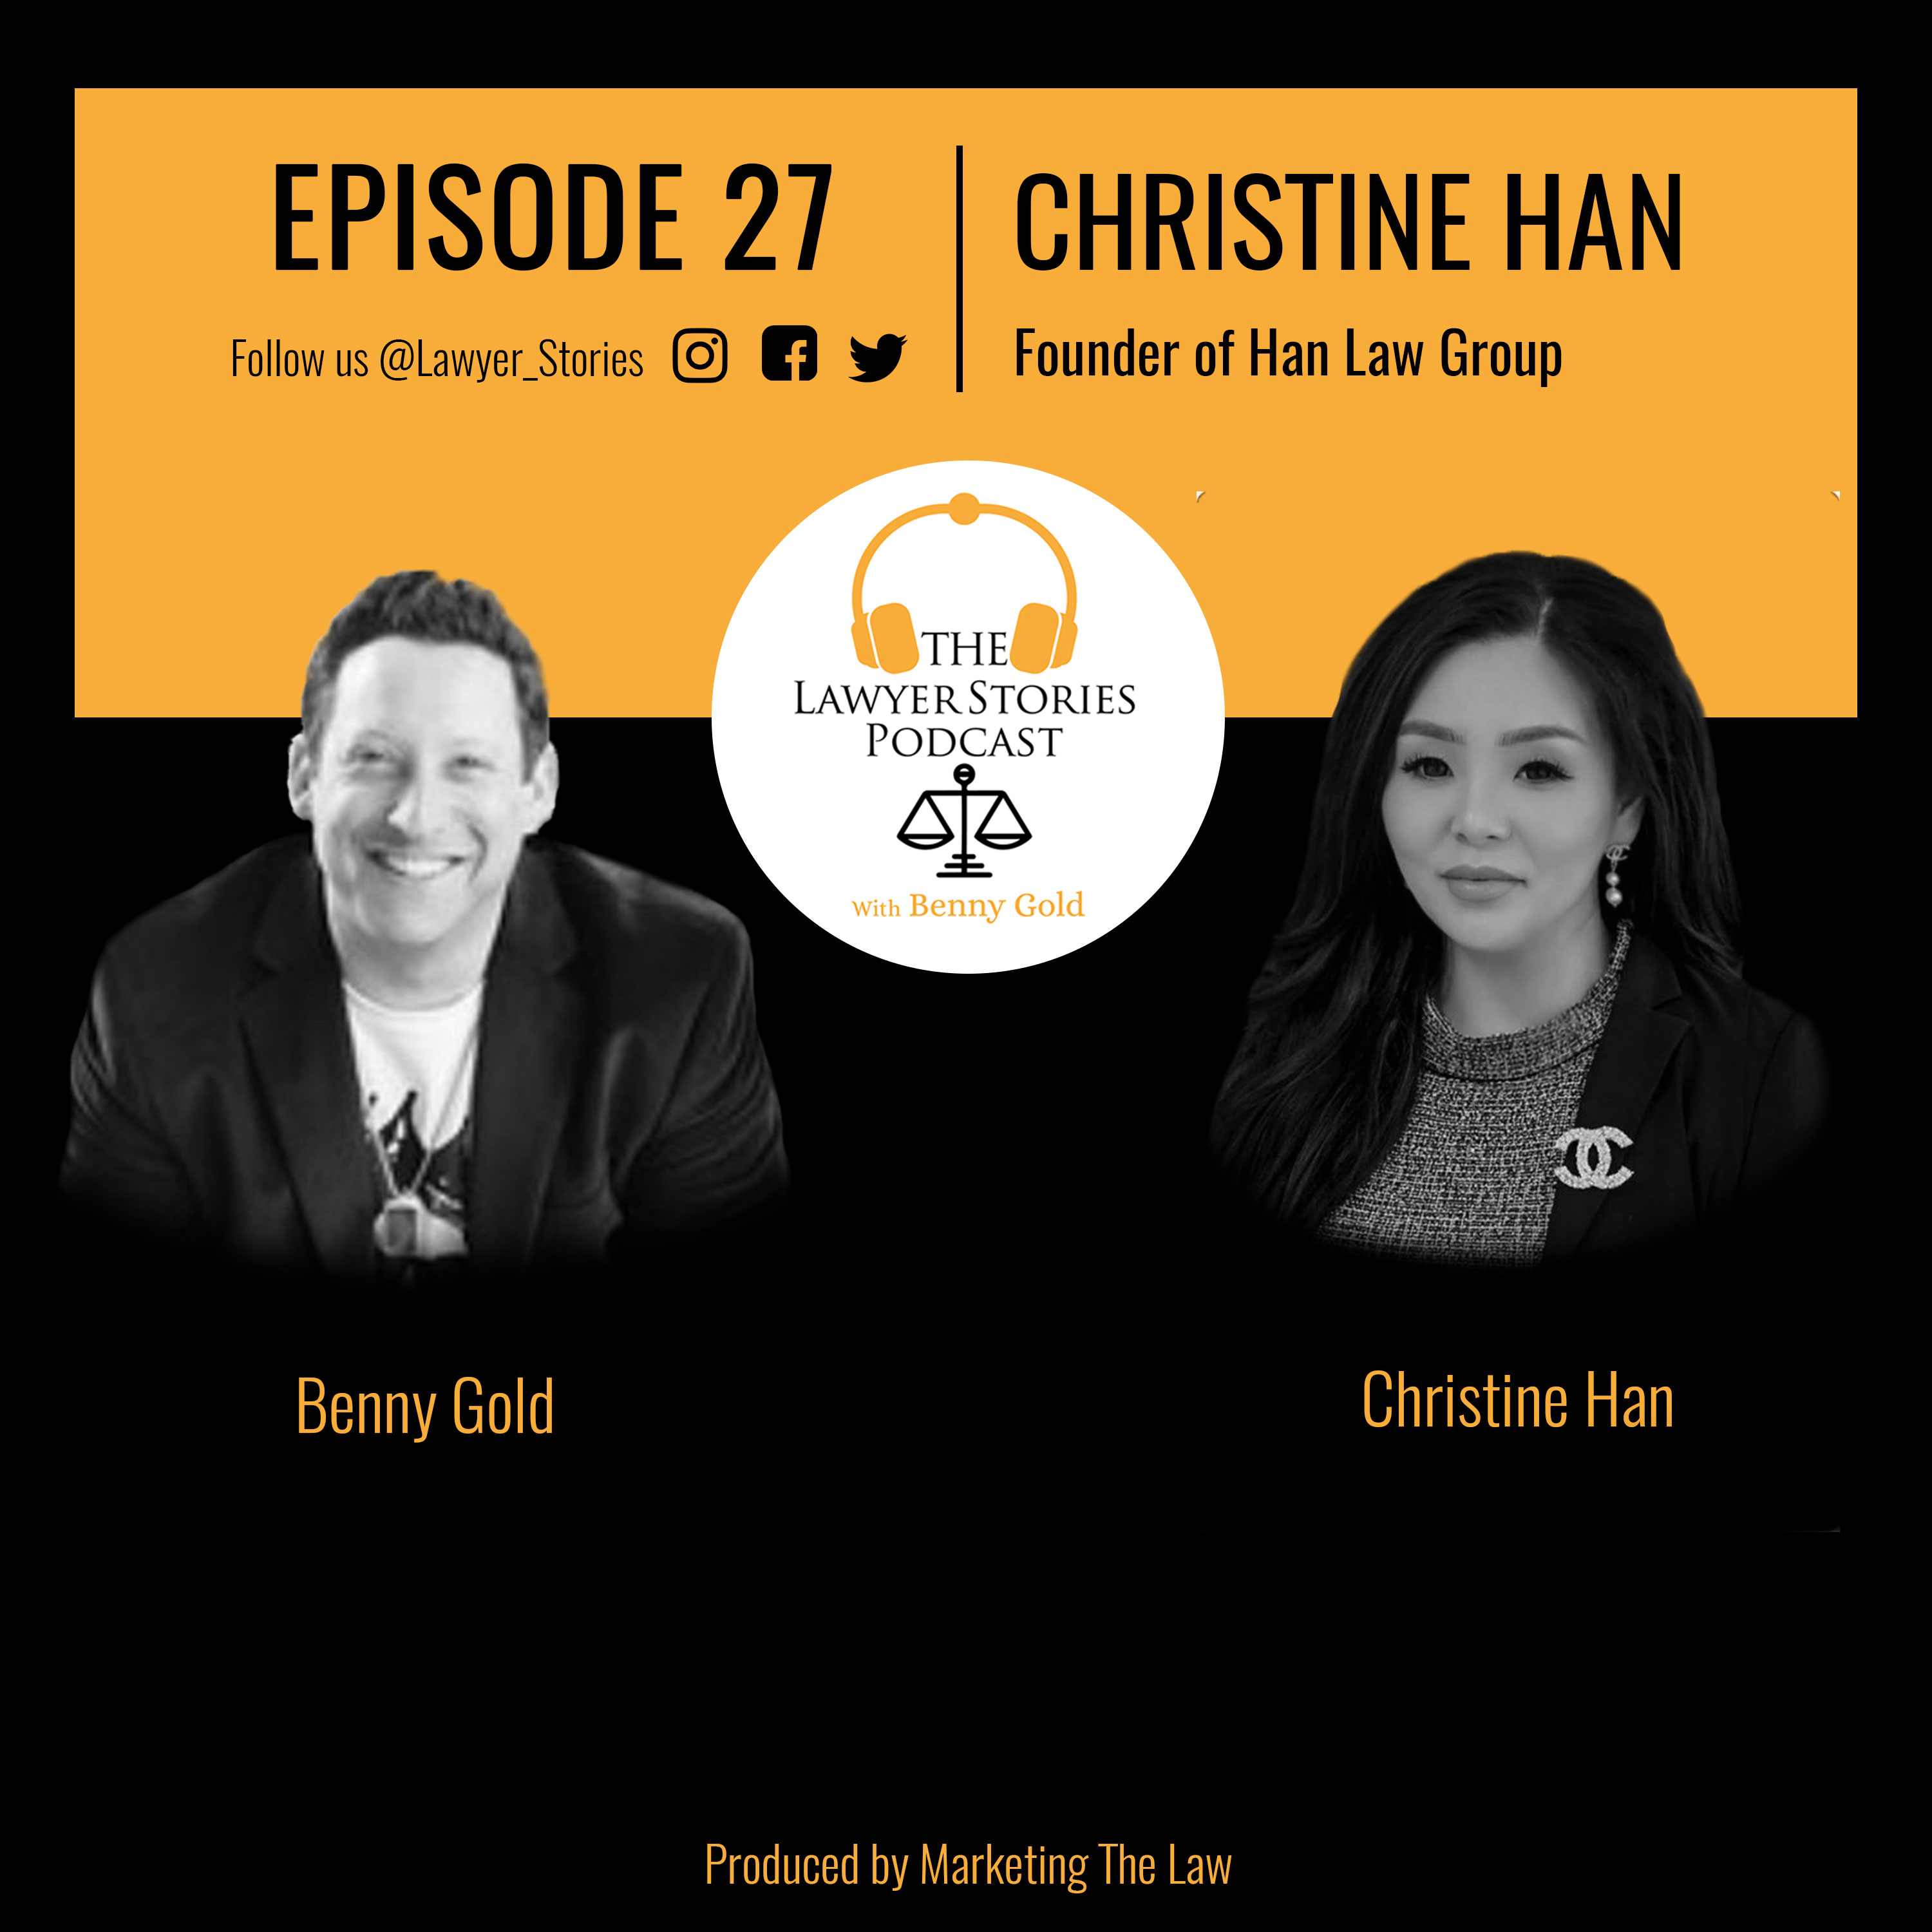 The Lawyer Stories Podcast Episode 27 featuring Christine Han, Founder of Han Law Group